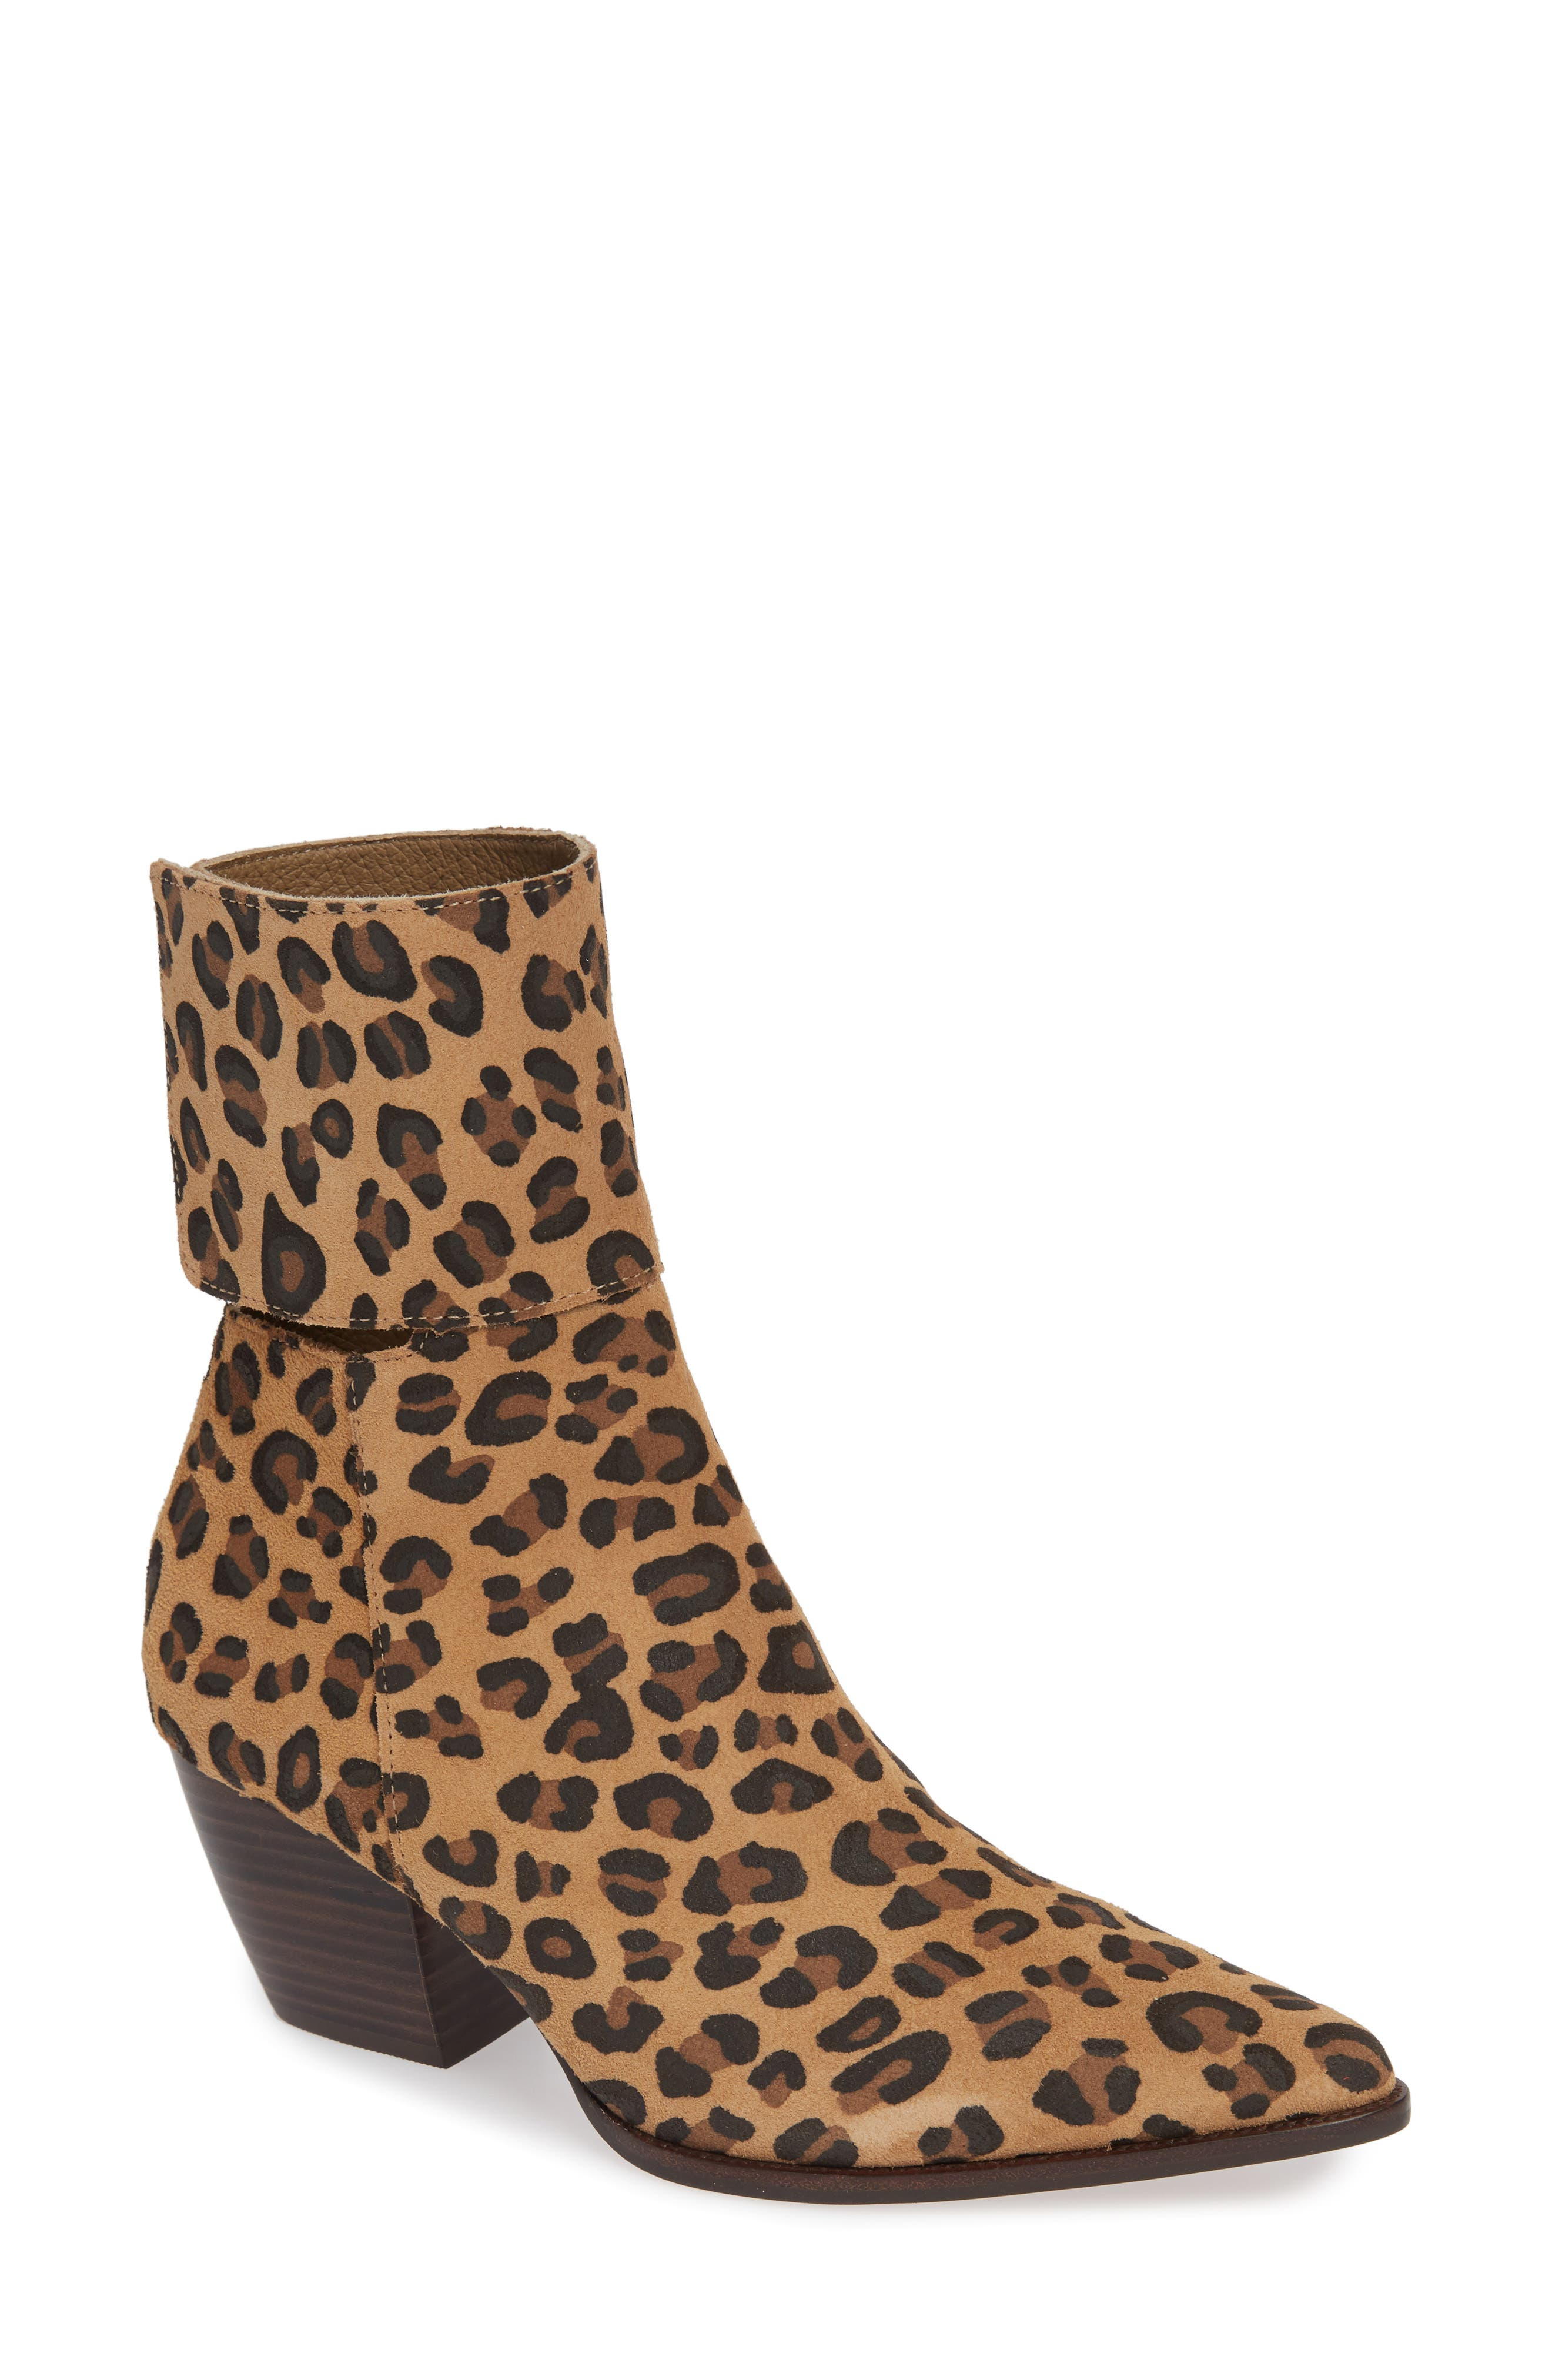 GOOD COMPANY ANKLE CUFF BOOTIE